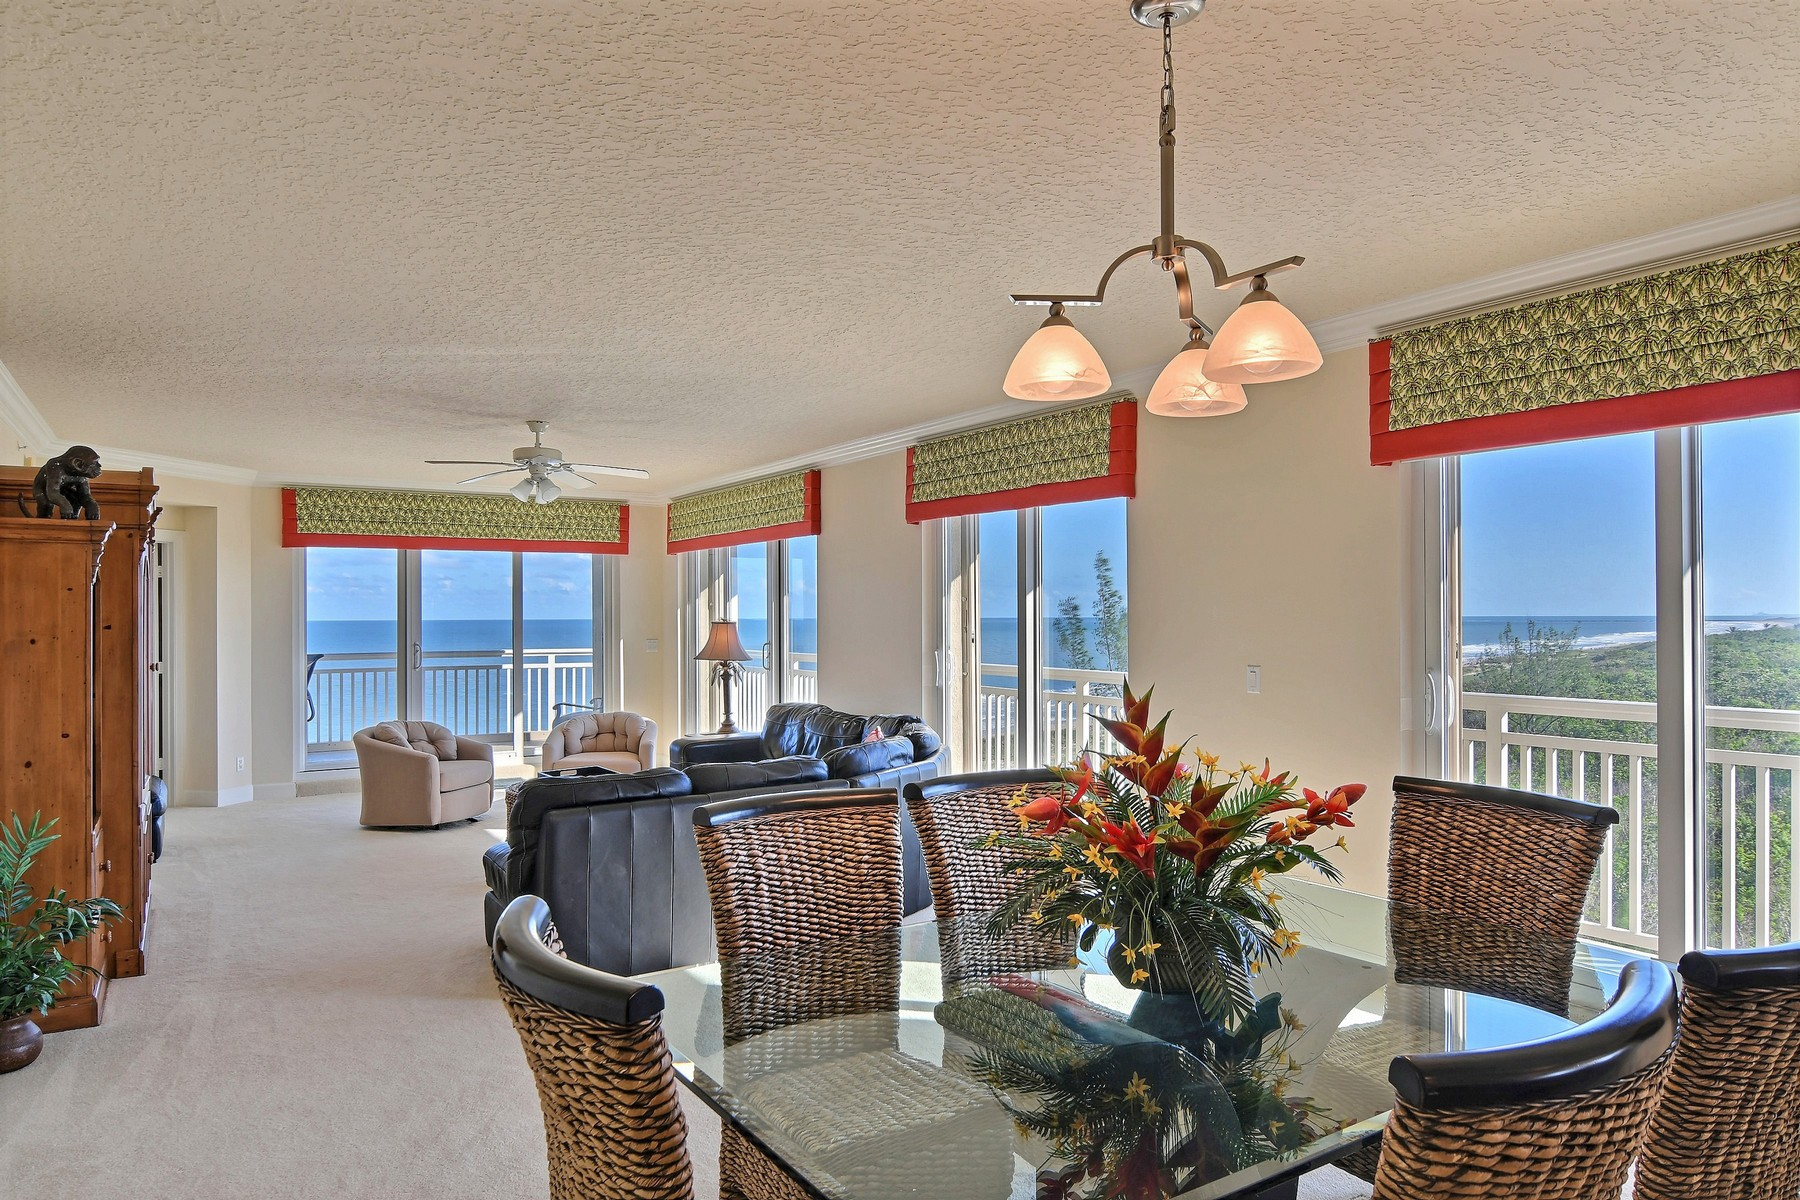 Grand Isle Condo with Stunning Ocean Views 3702 N Highway A1A #704 Hutchinson Island, Florida 34949 United States